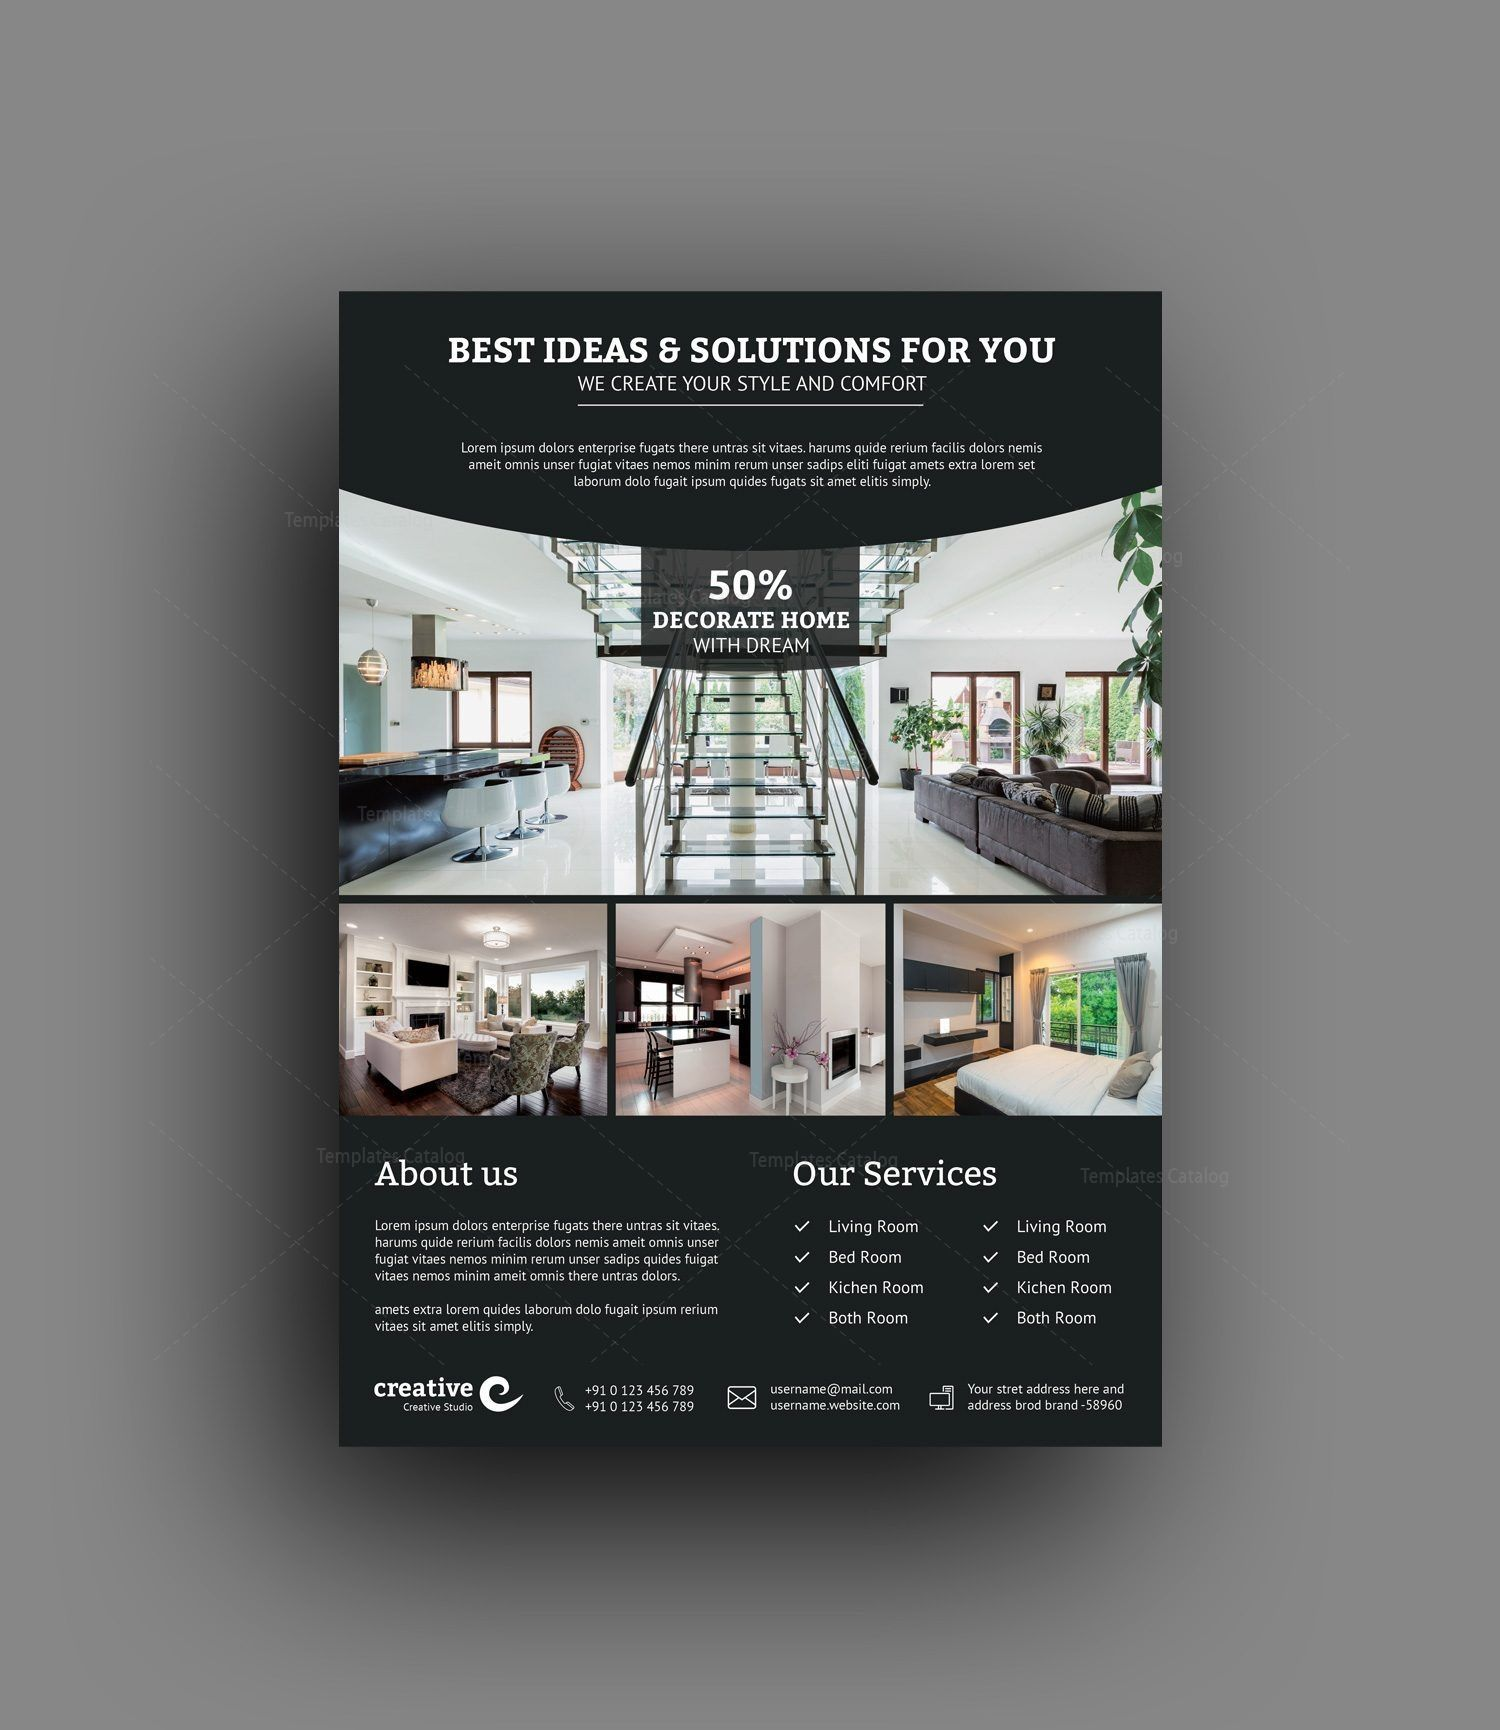 001 Unforgettable In Design Flyer Template Inspiration  Templates Indesign Free For Mac EventFull